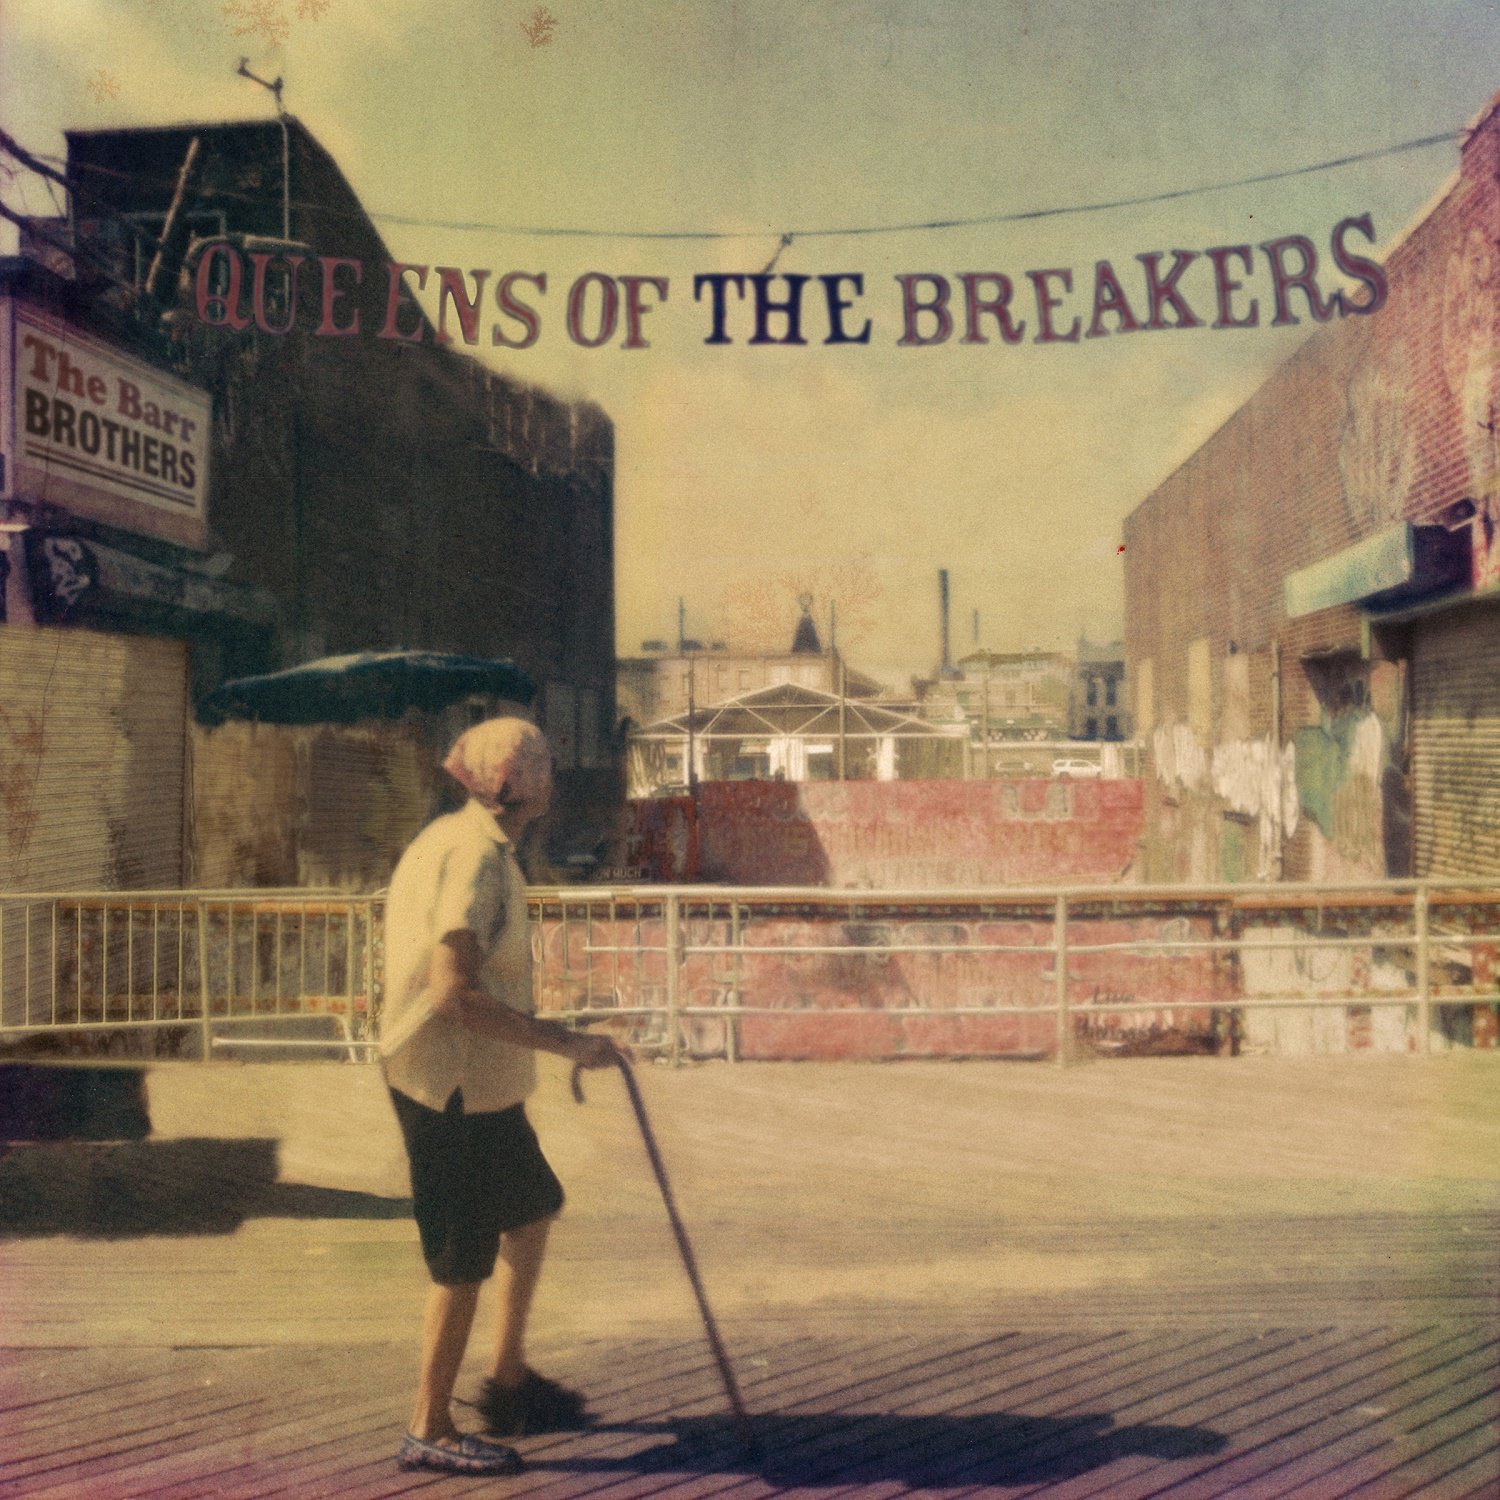 The Barr Brothers - Queens Of The Breakers (Gatefold LP Jacket, Digital Download Card)